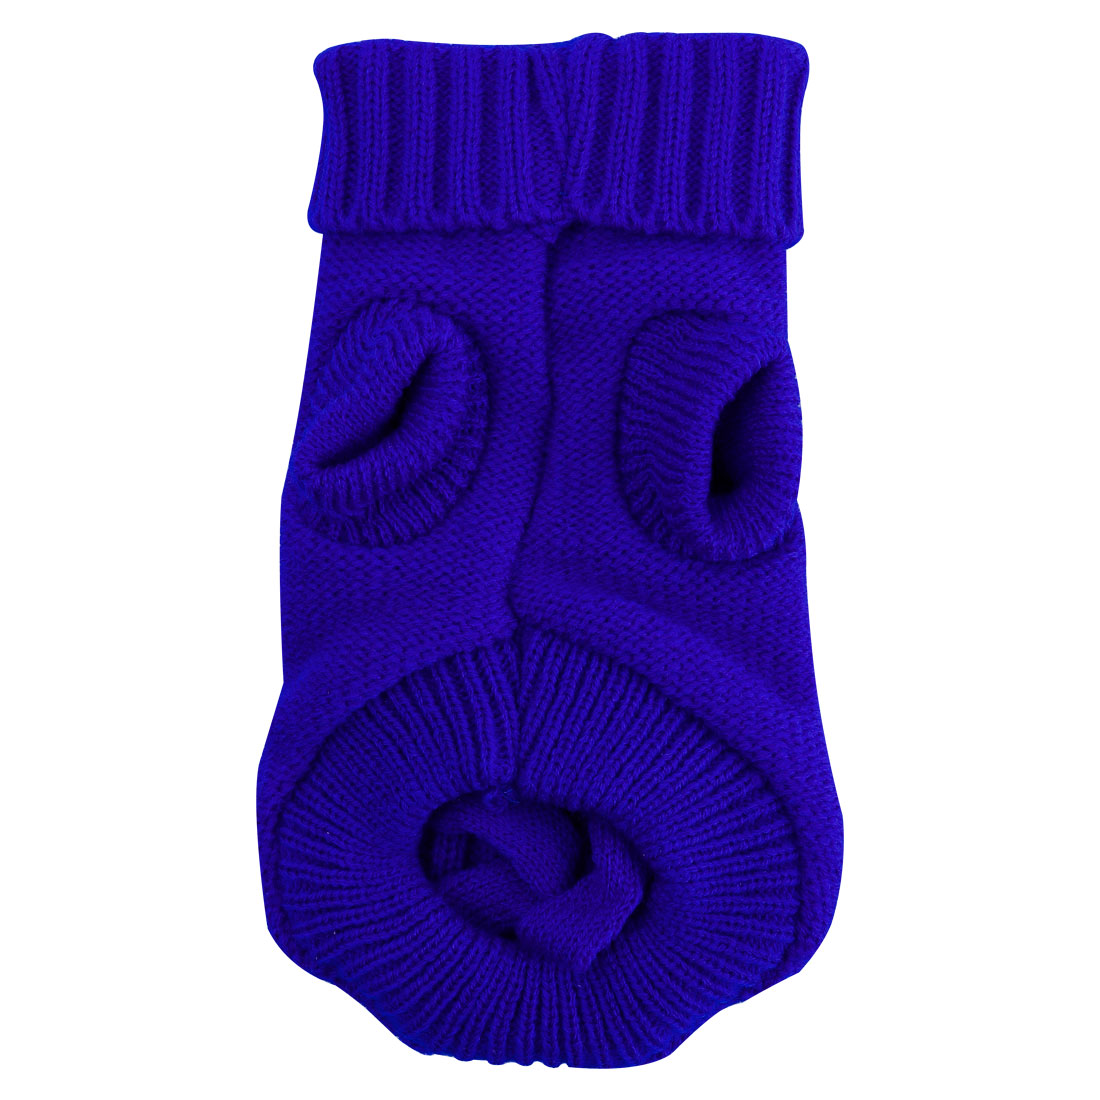 Pet Dogs Sweater Knitwear Coat Warm Dogs Clothes Winter Pet Custome Blue, M